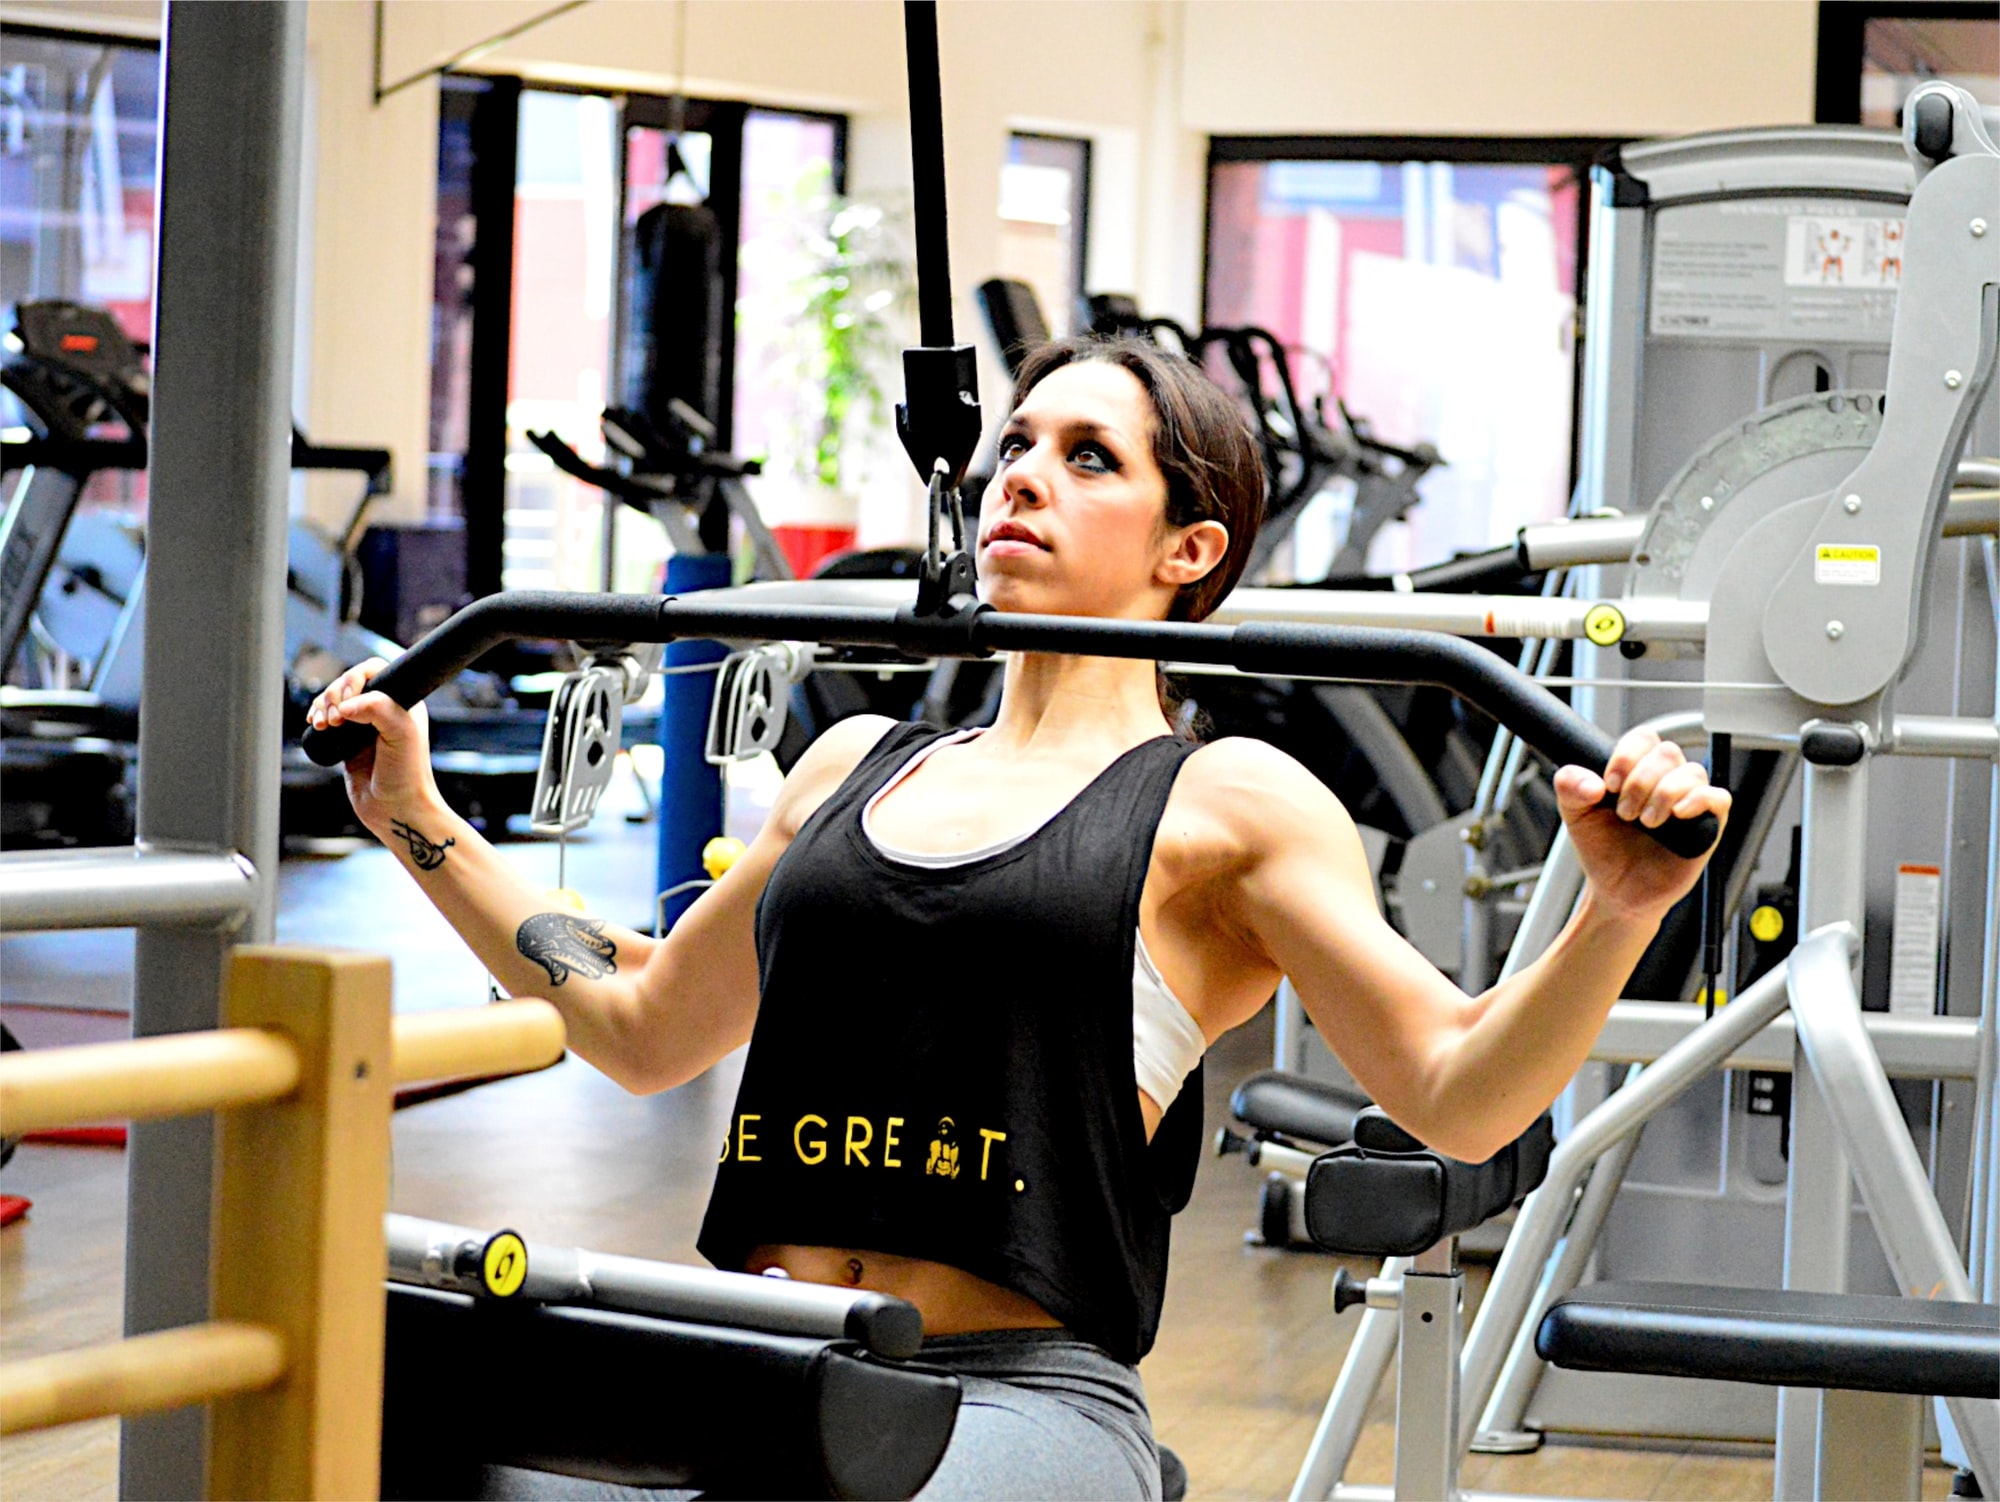 Sarah Ezzideen Workout Gym Lat pulldowns